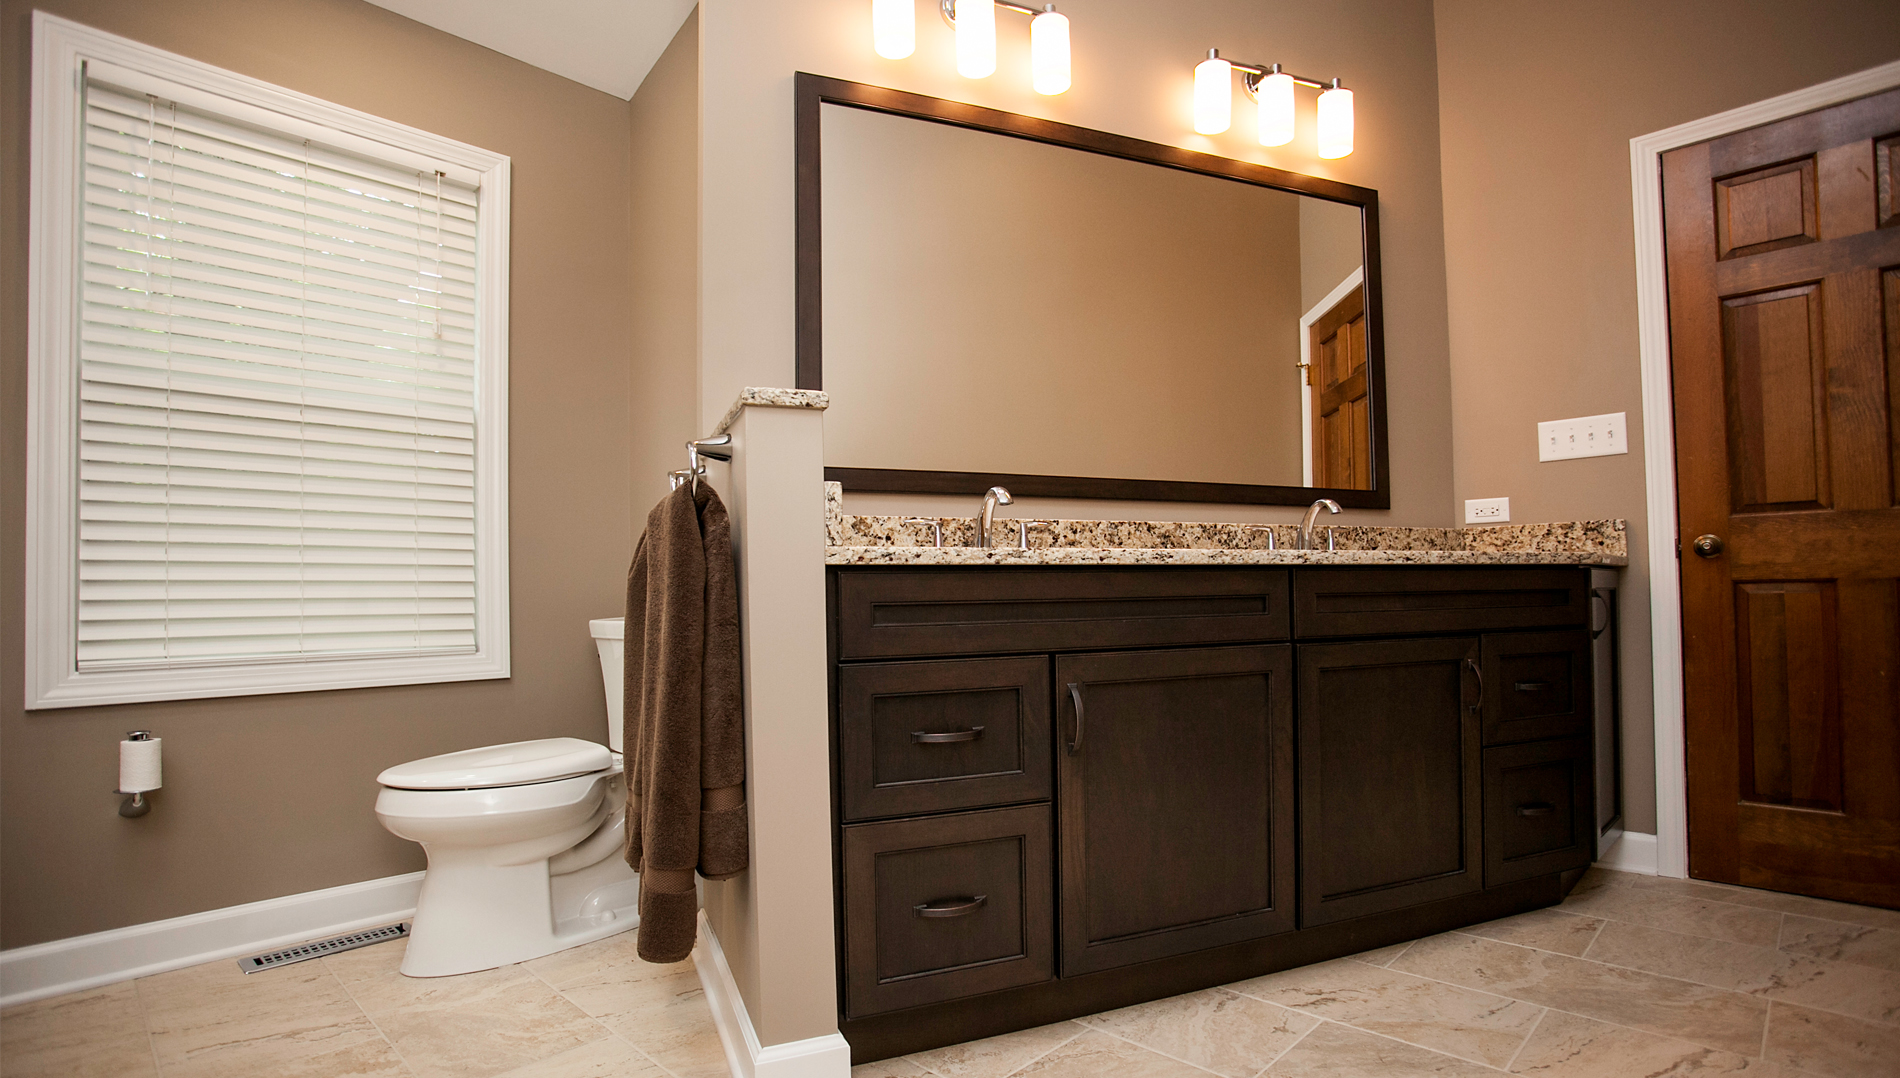 Bathroom Vanities Naperville Illinois Images Bathroom - Bathroom vanities naperville